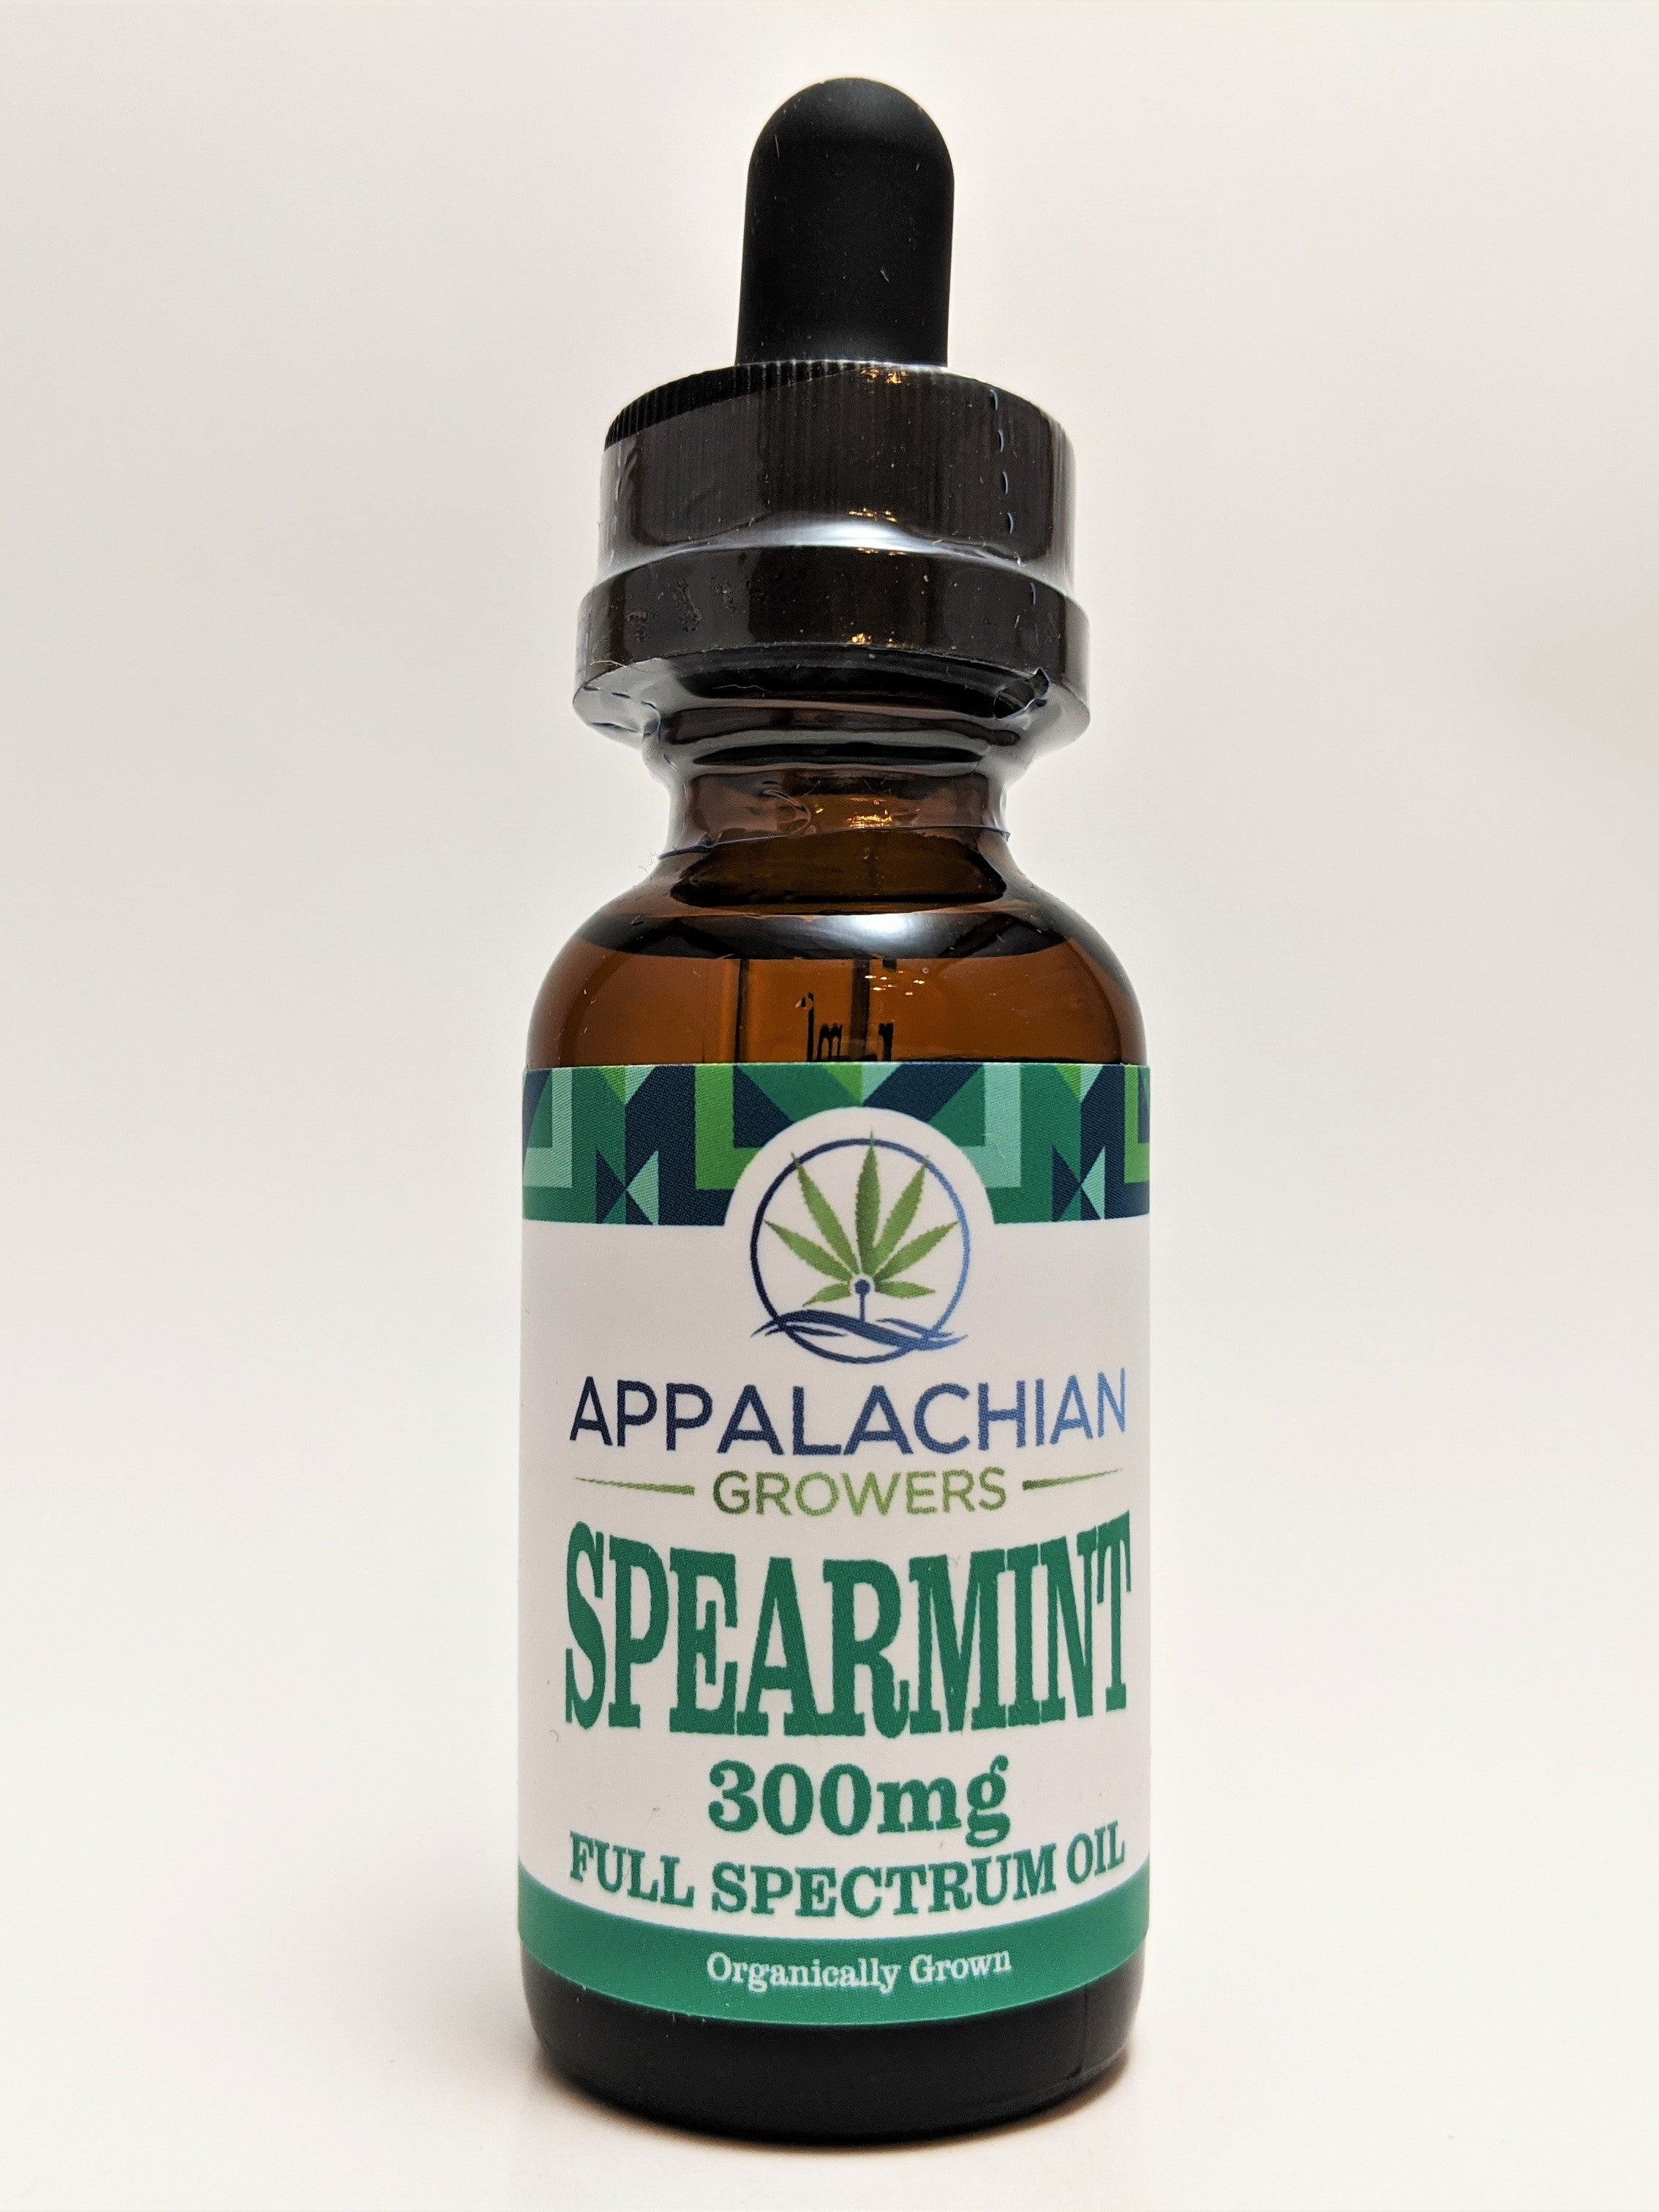 Appalachian Growers 300 mg Full Spectrum Oil - Spearmint - CBD Central